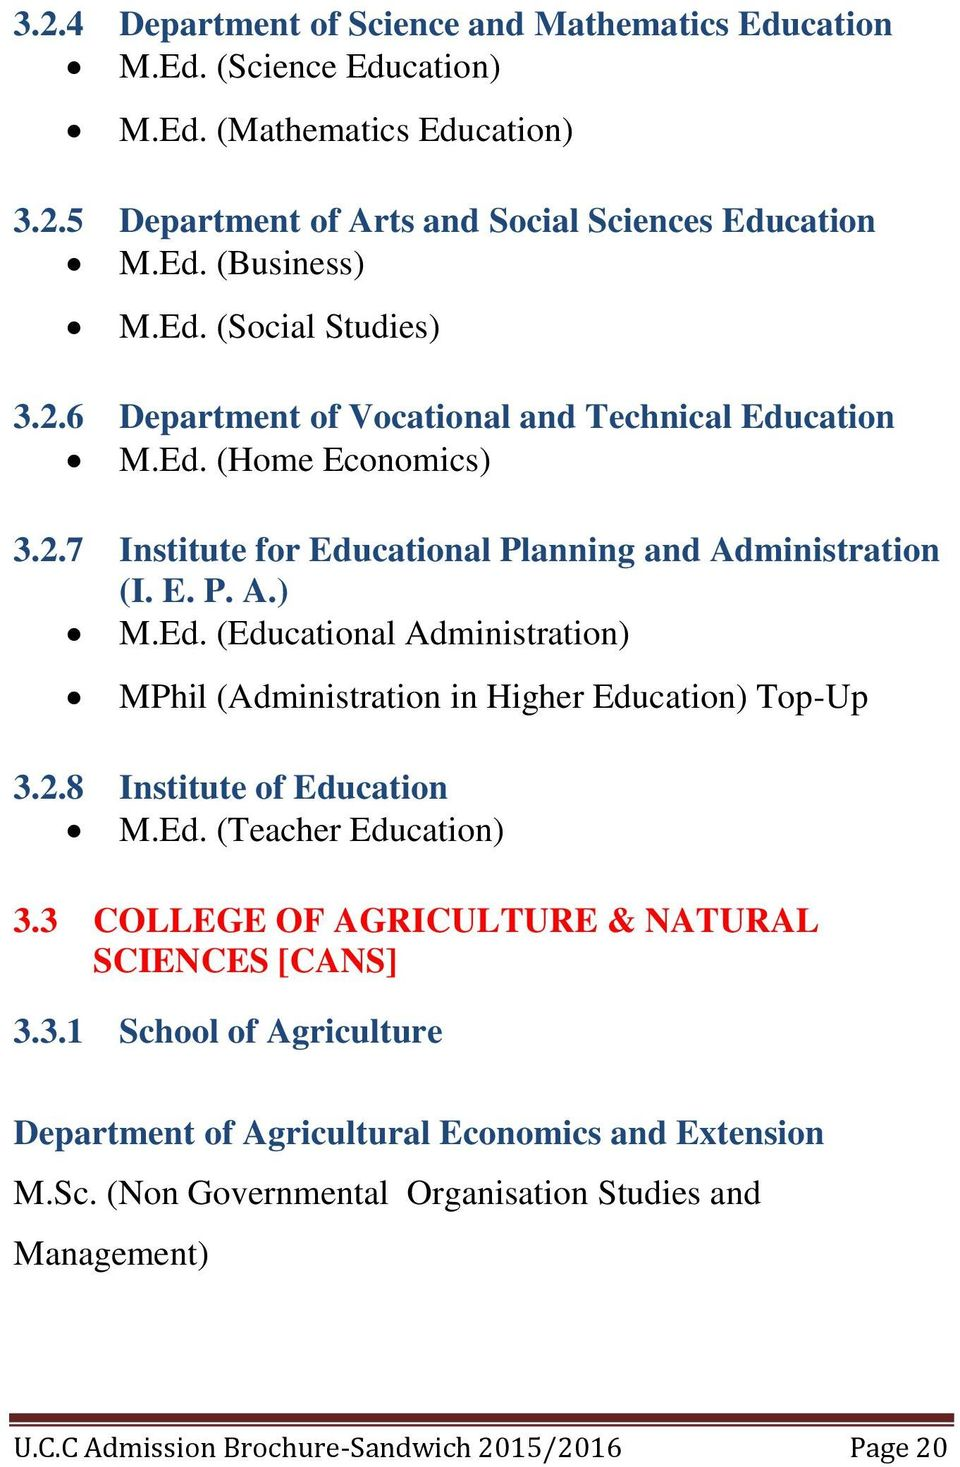 2.8 Institute of Education M.Ed. (Teacher Education) 3.3 COLLEGE OF AGRICULTURE & NATURAL SCIENCES [CANS] 3.3.1 School of Agriculture Department of Agricultural Economics and Extension M.